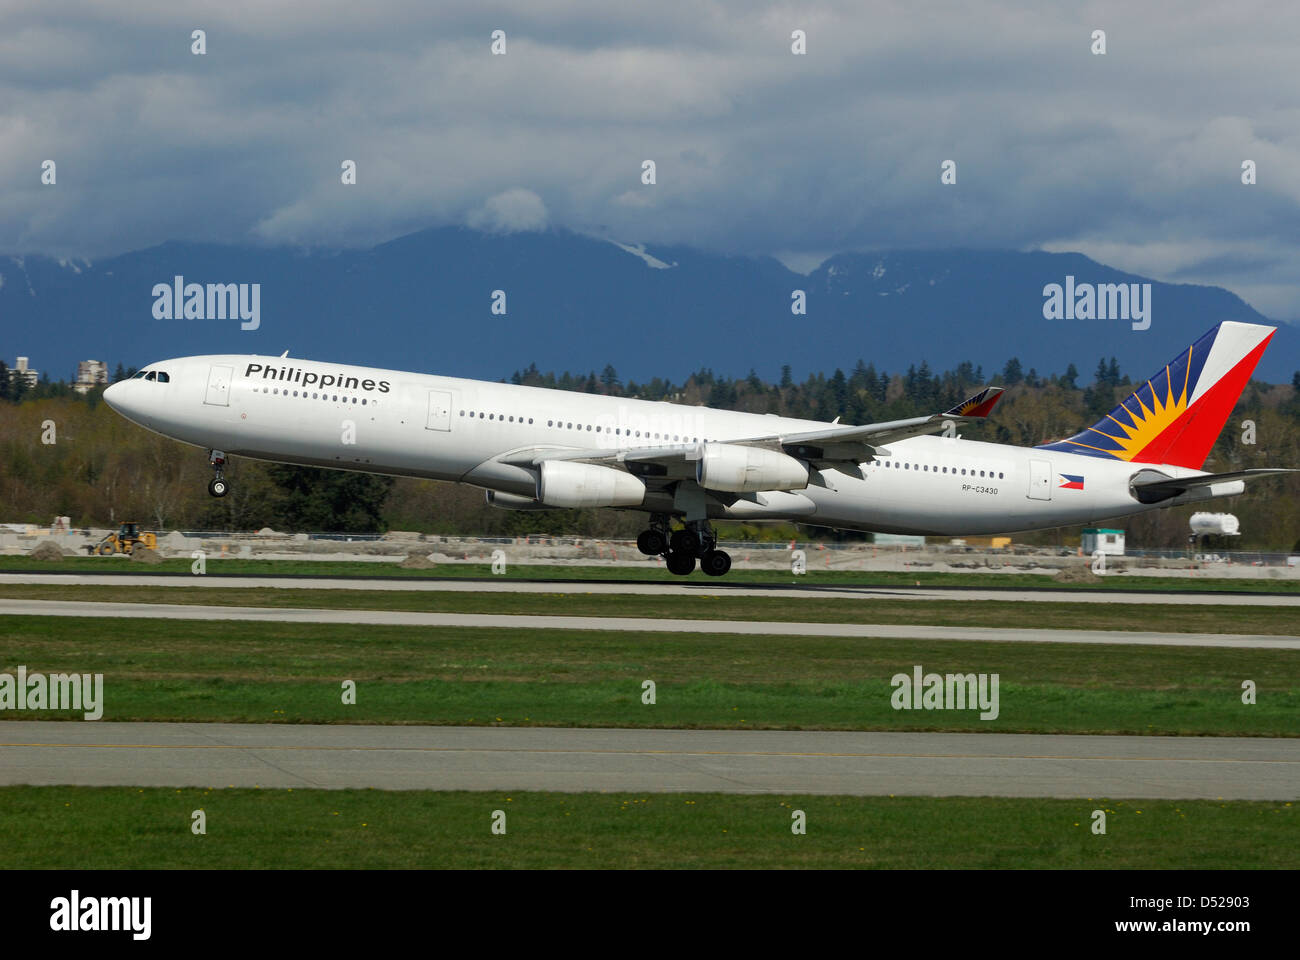 Philippines Airline Airbus A340-313X  landing at Vancouver International airport. - Stock Image